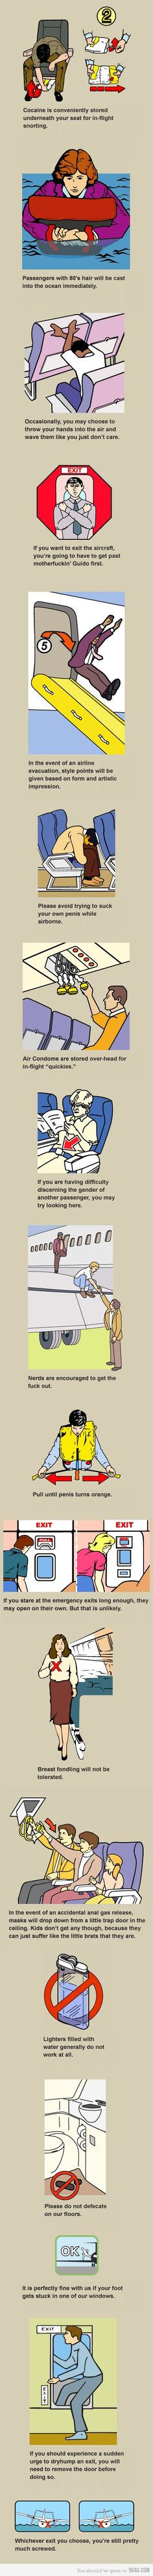 Interpreting airline safety guidelines